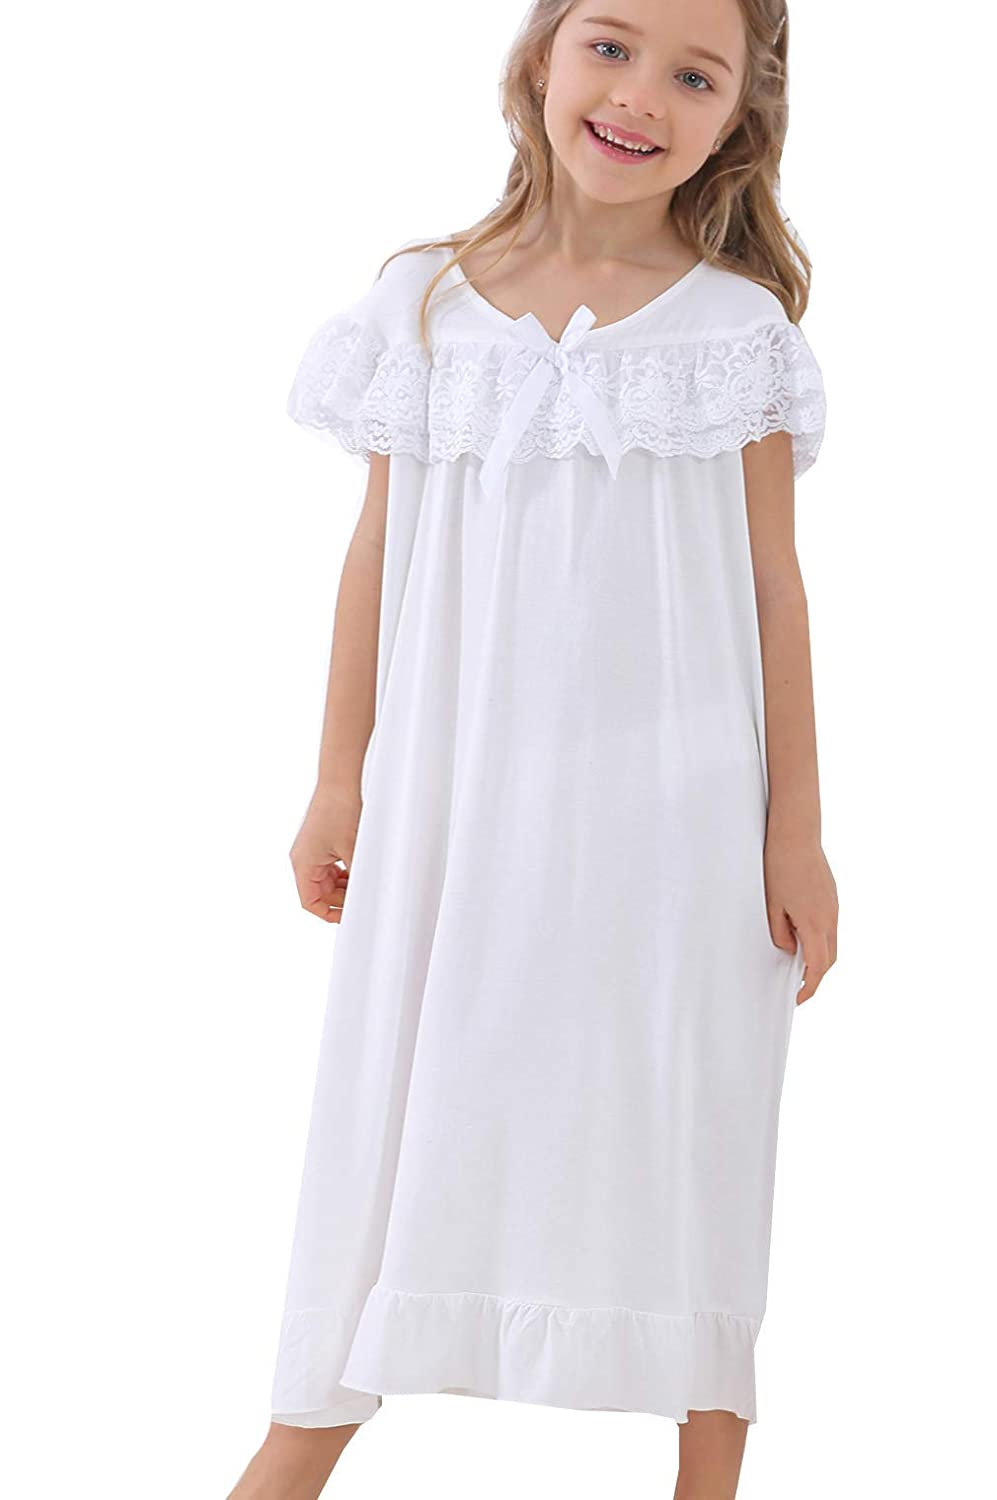 PUFSUNJJ Lovely Girls Princess Nightgown Soft Cotton Sleepwear Kids 3-12 Years